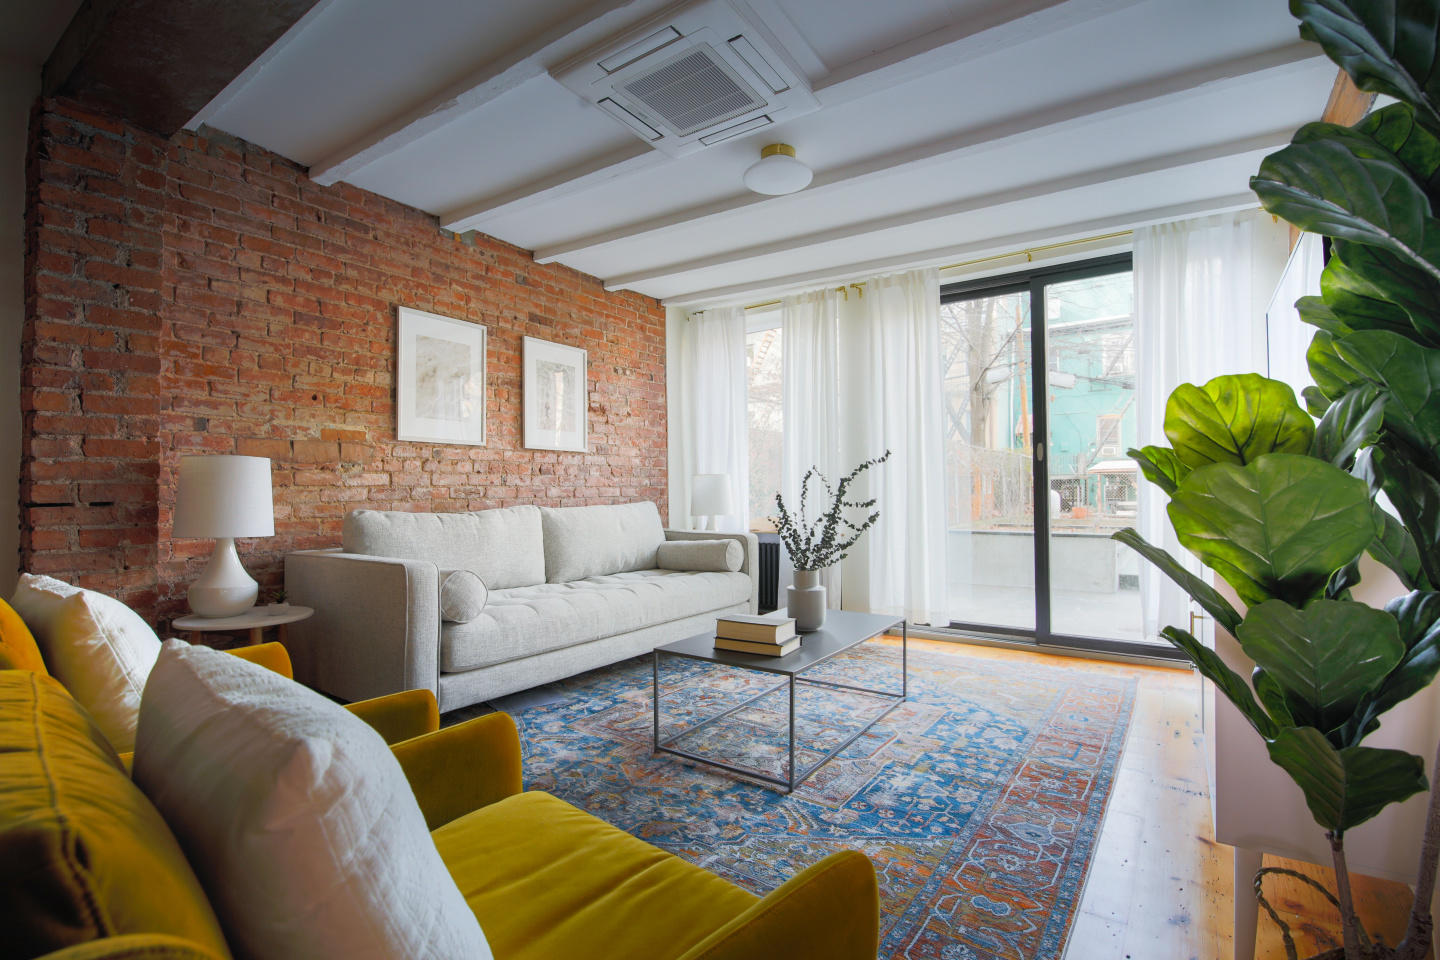 Spacious apartment in New York with Internet, G... Slide-1